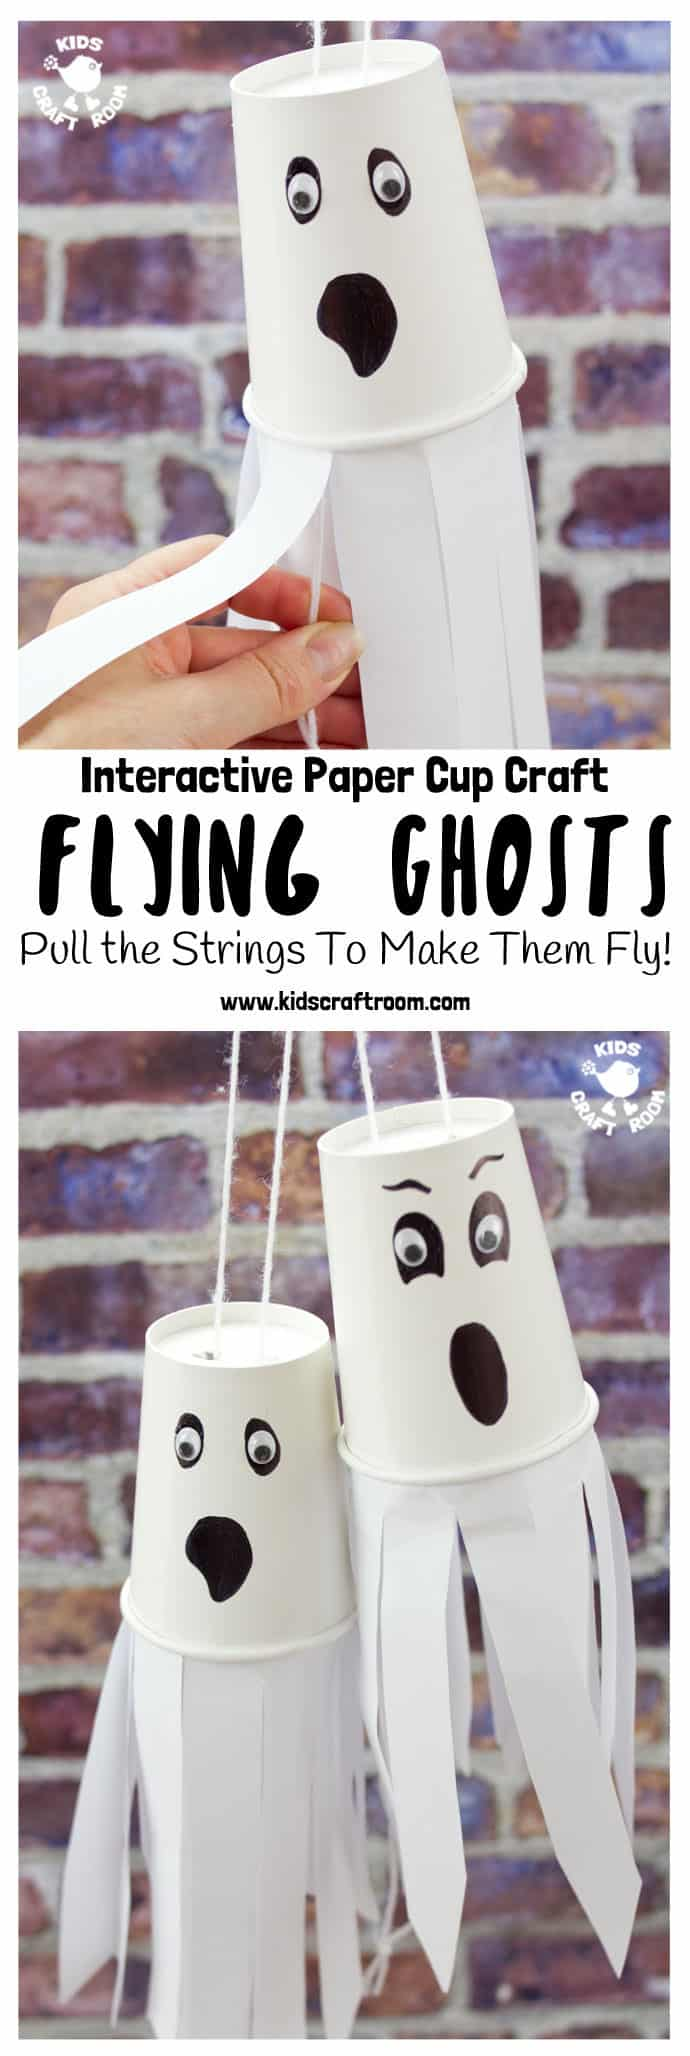 A Halloween ghost that really flys? Believe it, my little ghouls! It's simple to make and fun to play with! Here you'll find a variety of easy Halloween crafts for your kids, toddlers and preschoolers. #Howweelearn #Halloweencrafts #Craftsforkids